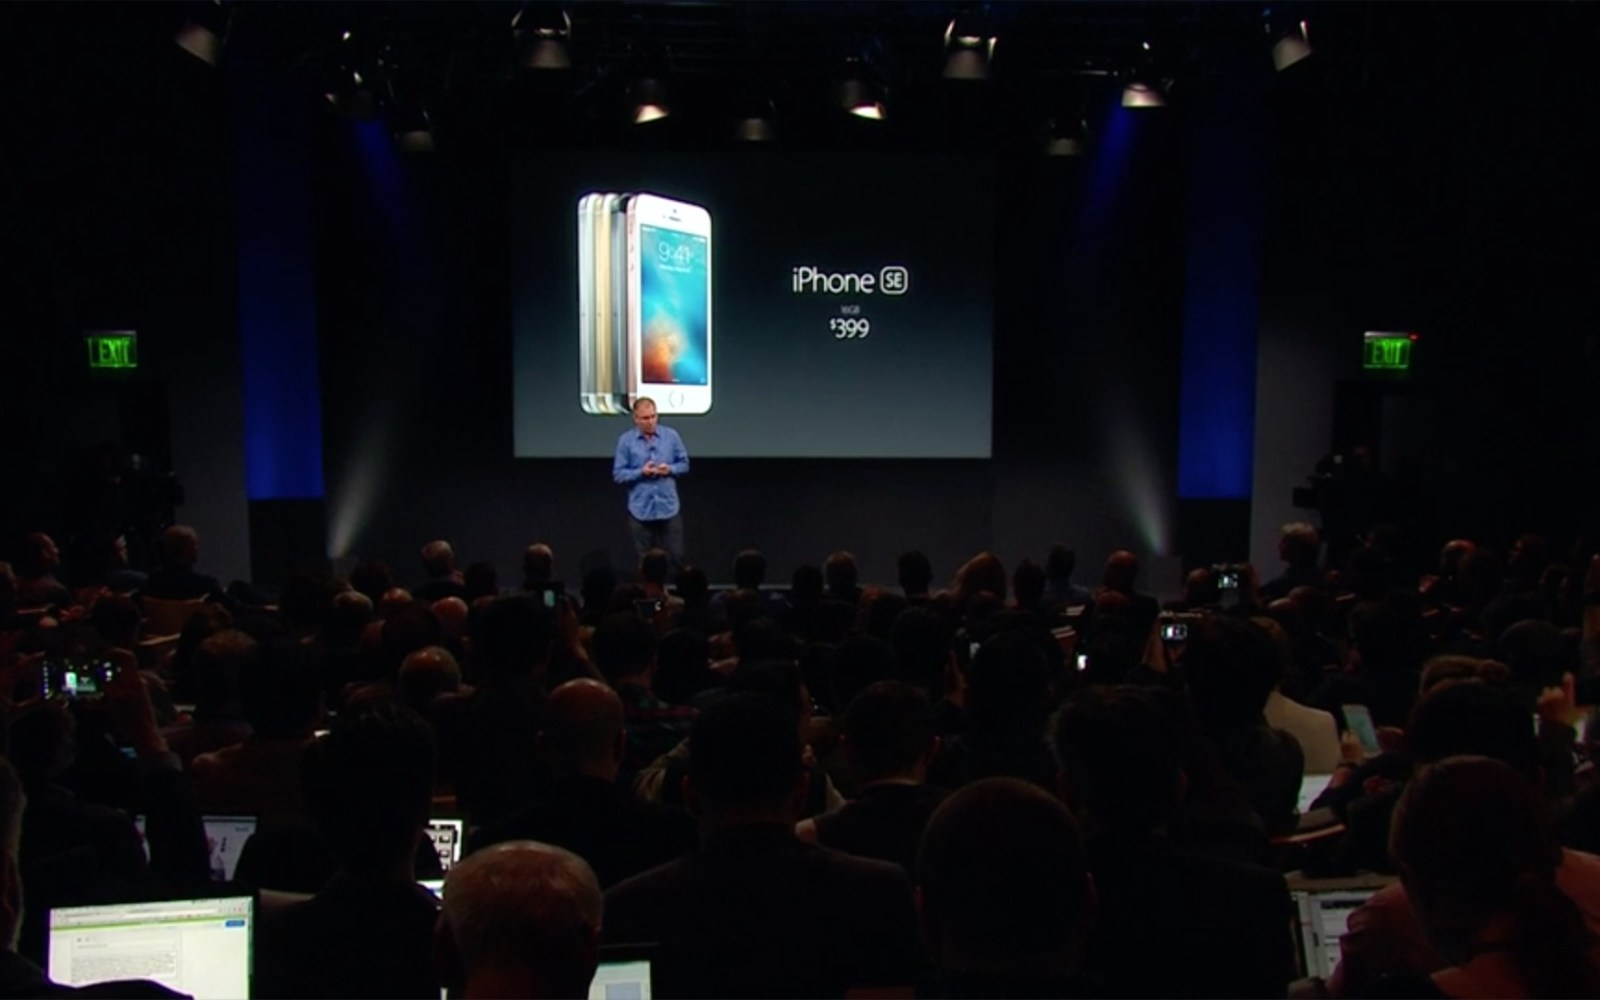 Watch the product announcements from the iPhone SE event in under 10 minutes